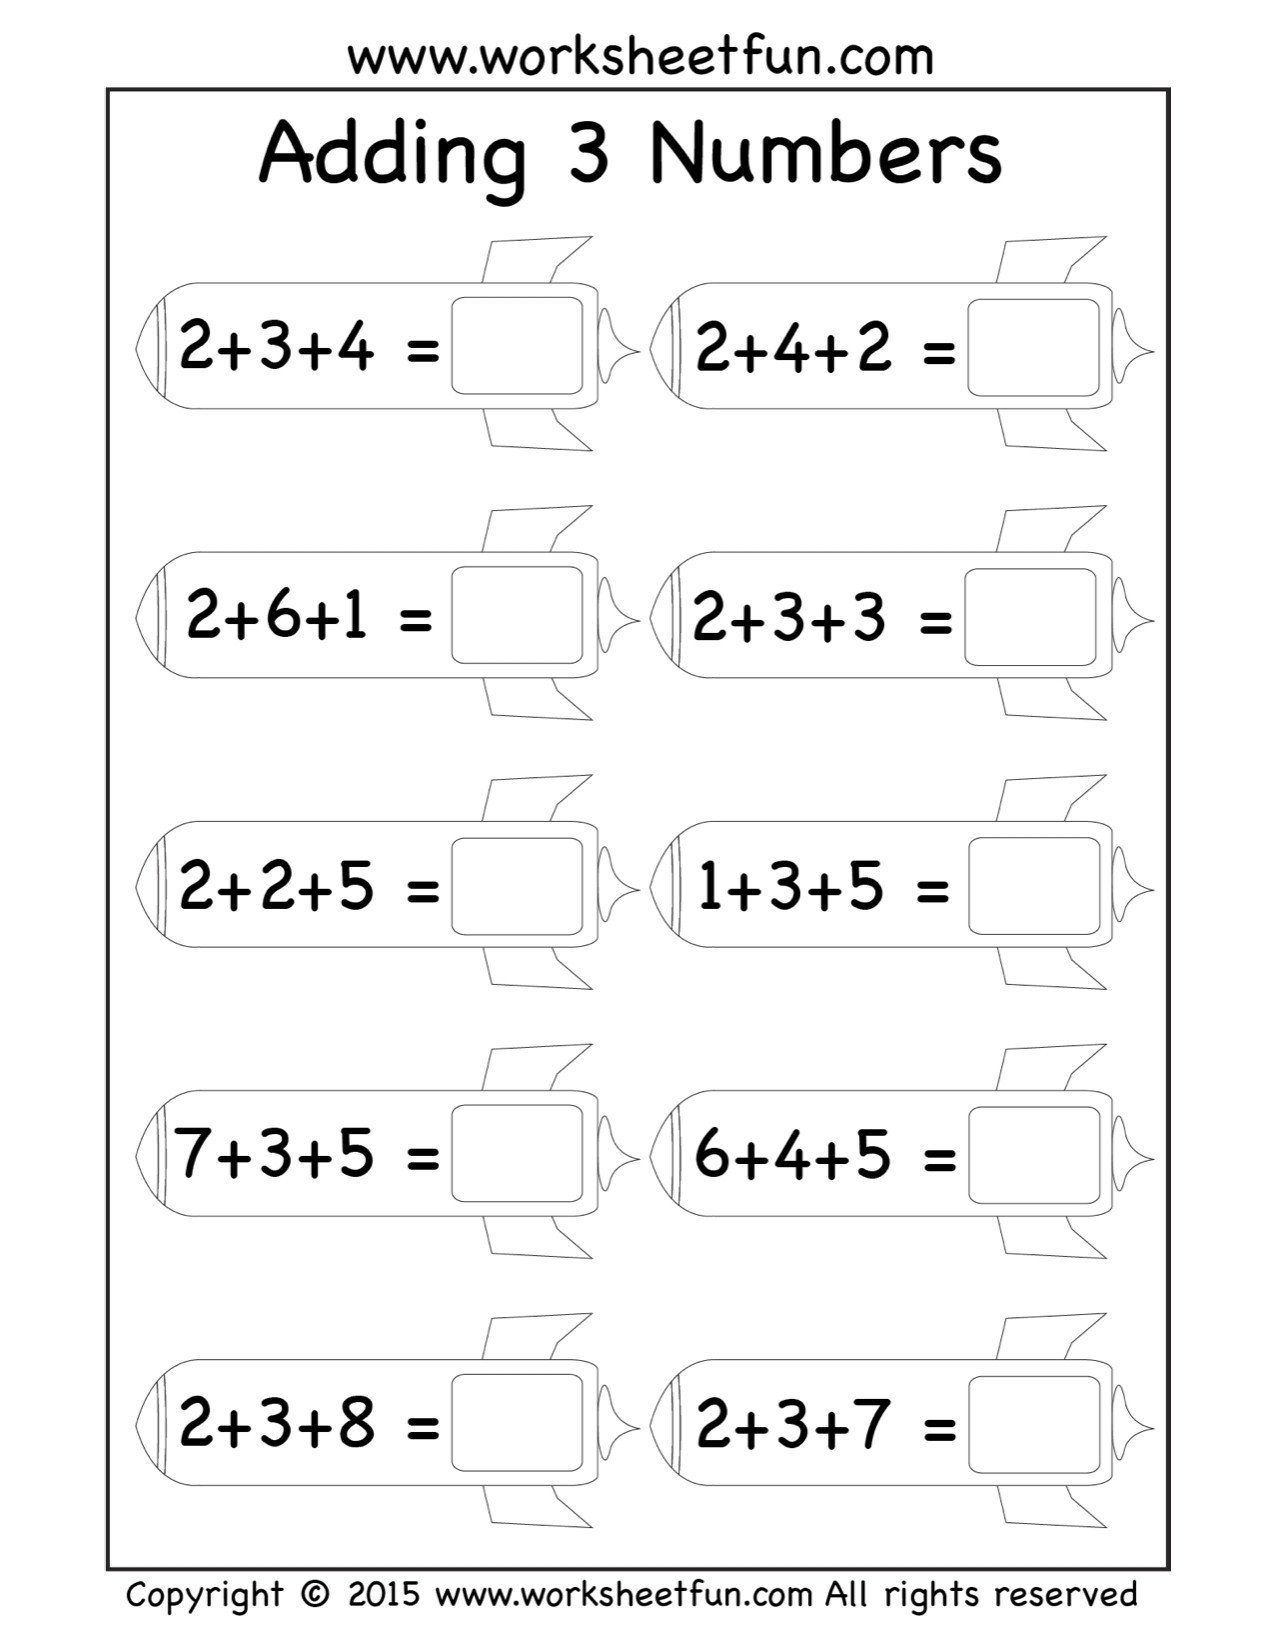 free math worksheets first grade 1 addition add 2 digit 1 digit numbers missing addend no regrouping of free math worksheets first grade 1 addition add 2 digit 1 digit numbers missing addend